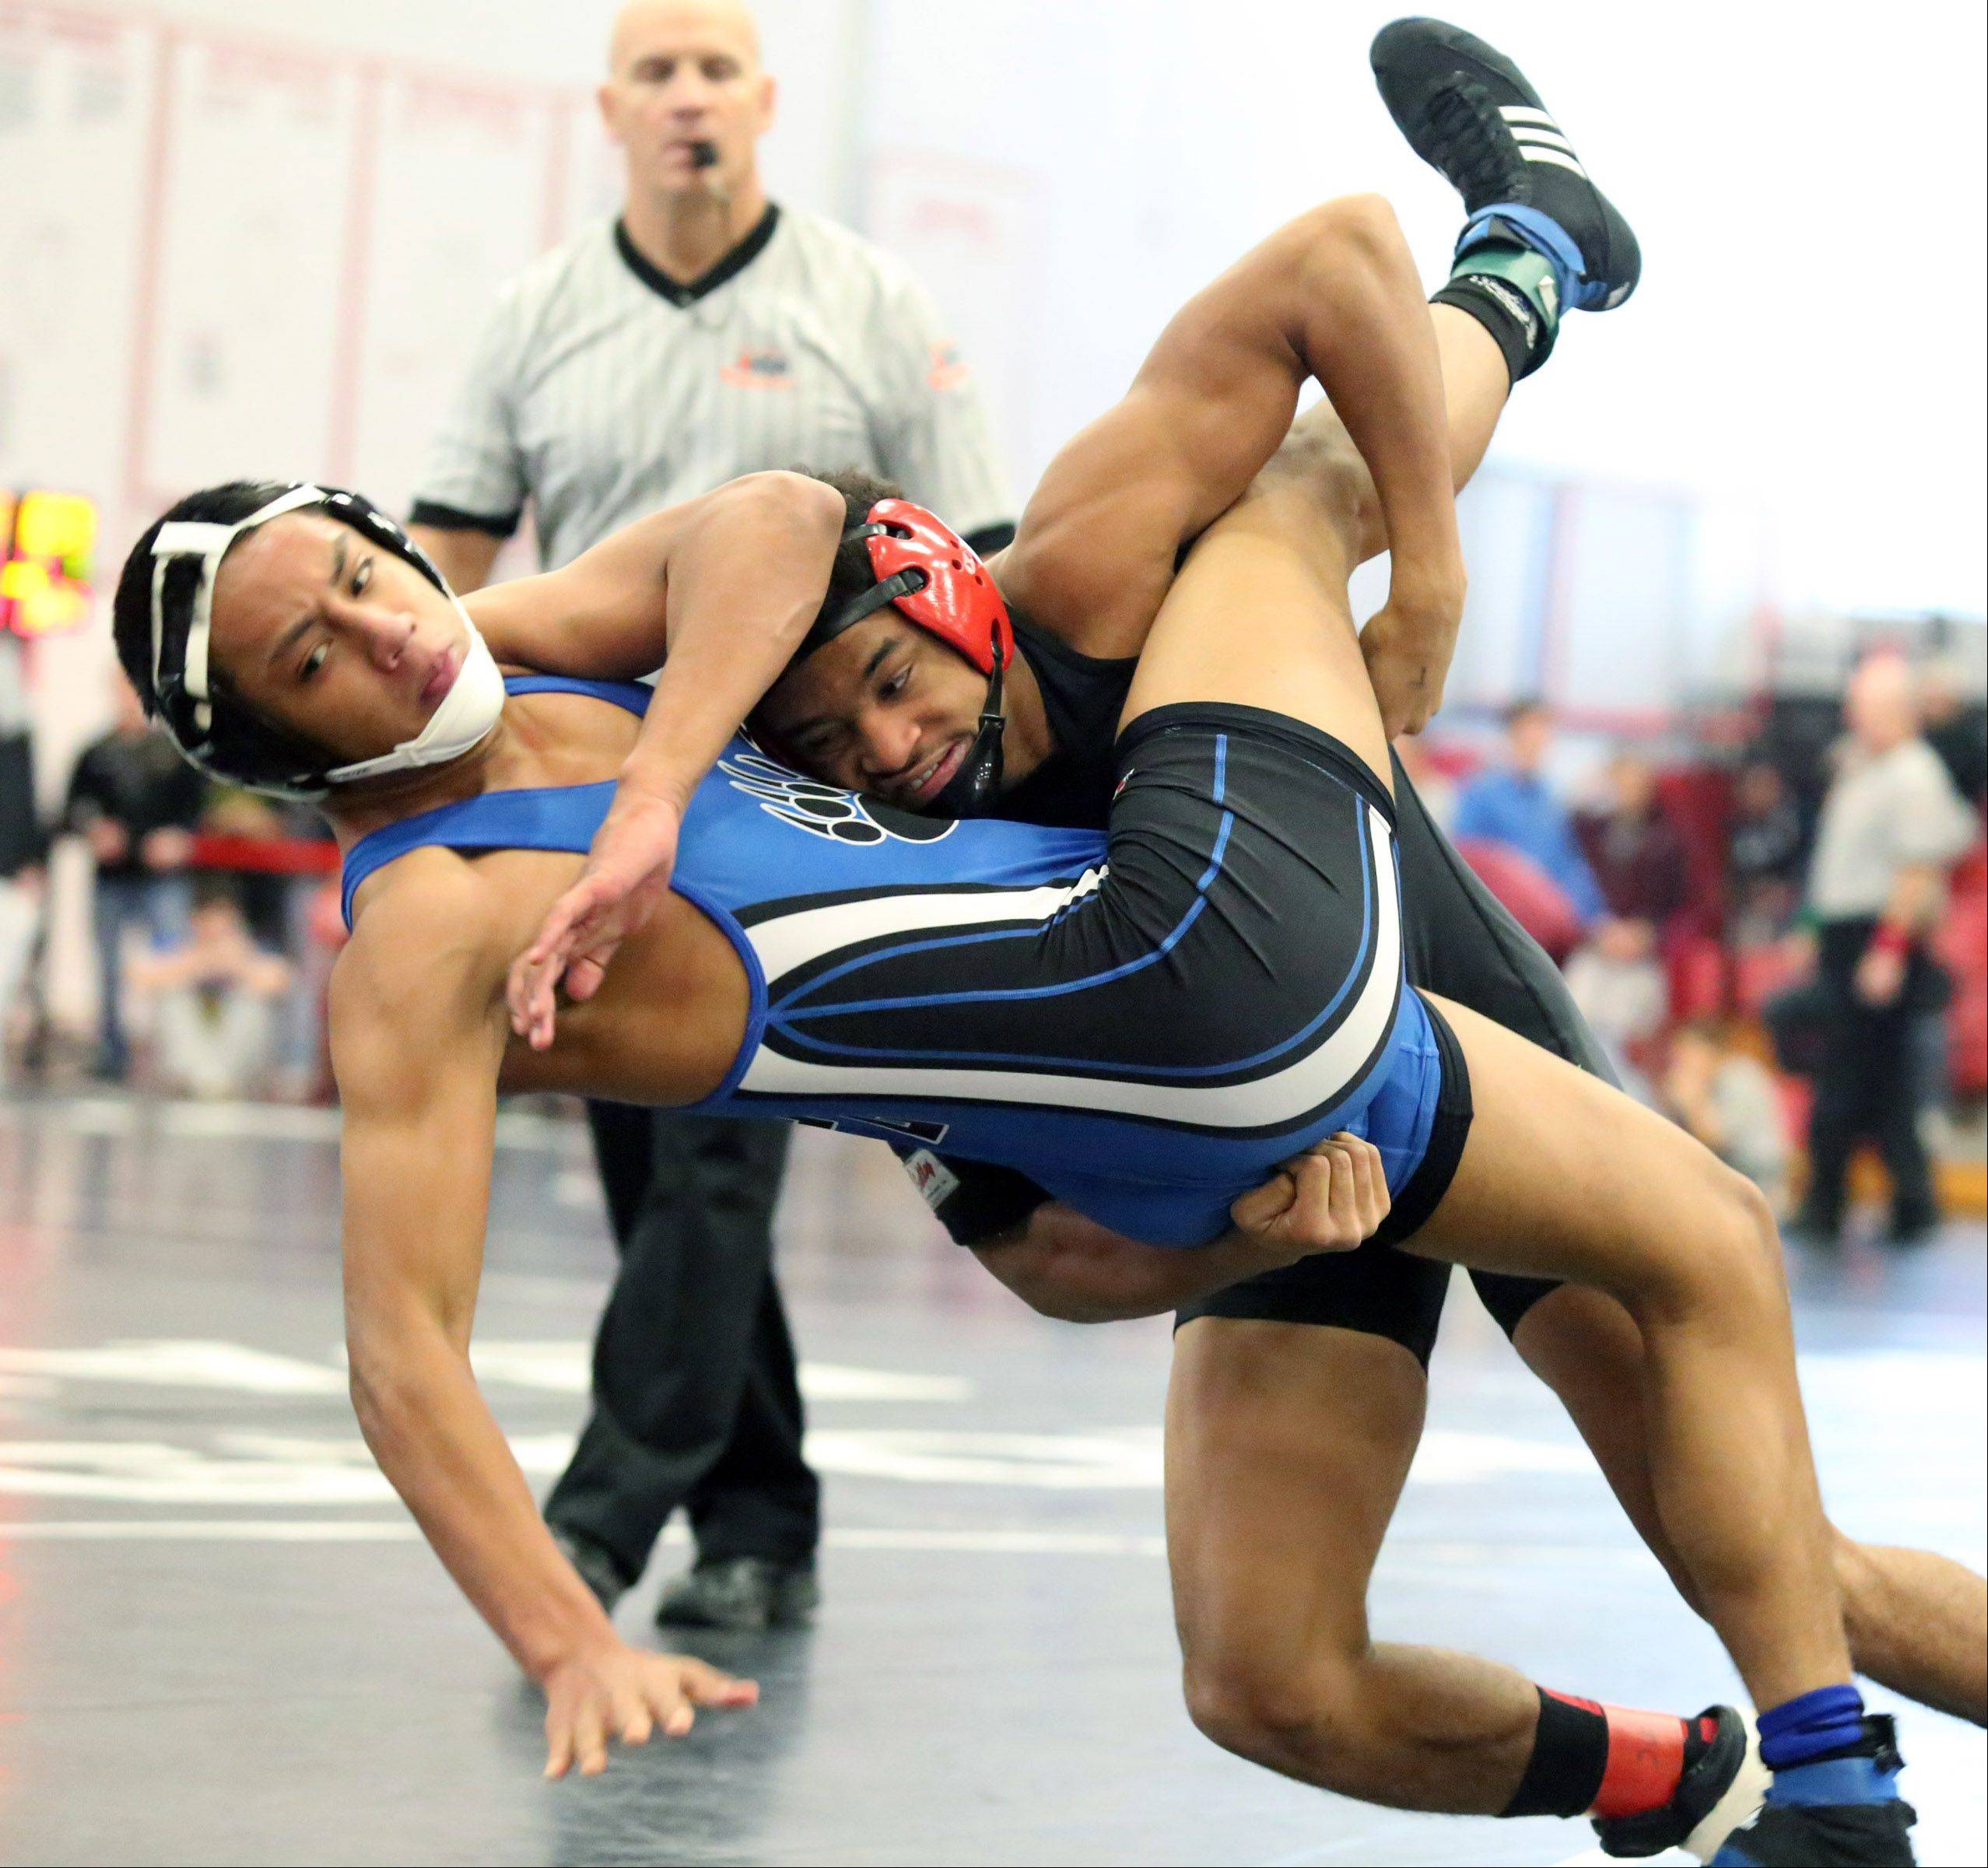 Hinsdale Central's Juwan Edmond, right, wins over Lake Zurich's Brandon Arleaga in the 145-pound semifinals at the 23rd annual Moore/Prettyman wrestling tournament on Saturday in Barrington.